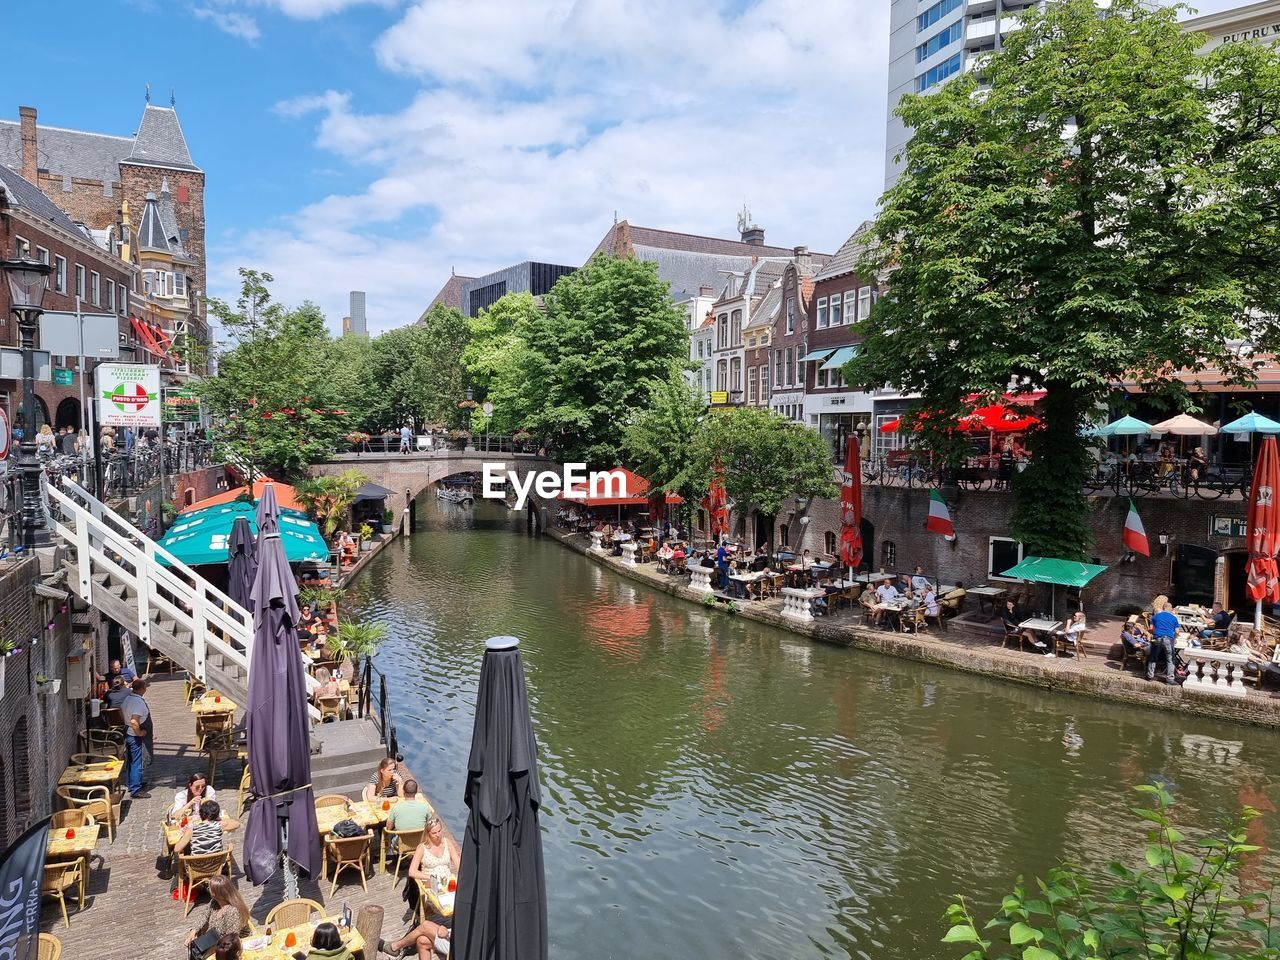 PANORAMIC VIEW OF PEOPLE ON BRIDGE OVER CANAL AMIDST BUILDINGS IN CITY